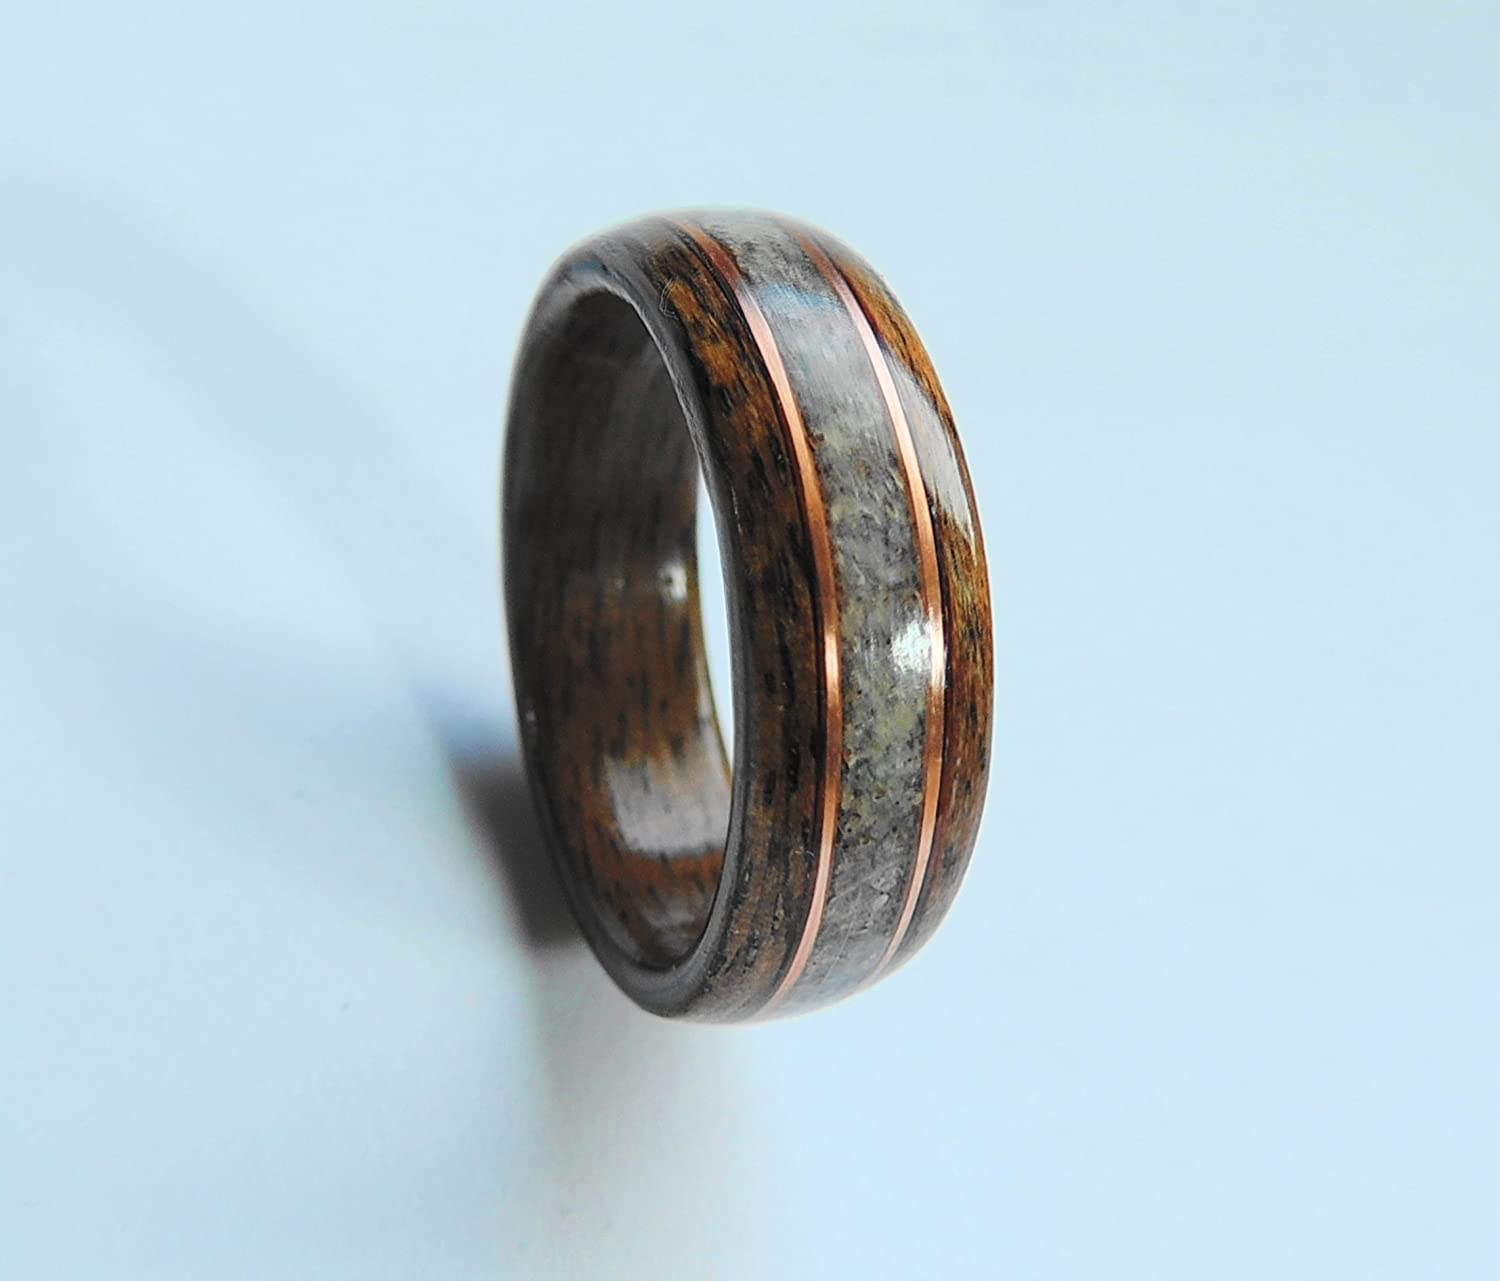 wooden download wood rings wedding nice corners sets ring bentwood couples idea